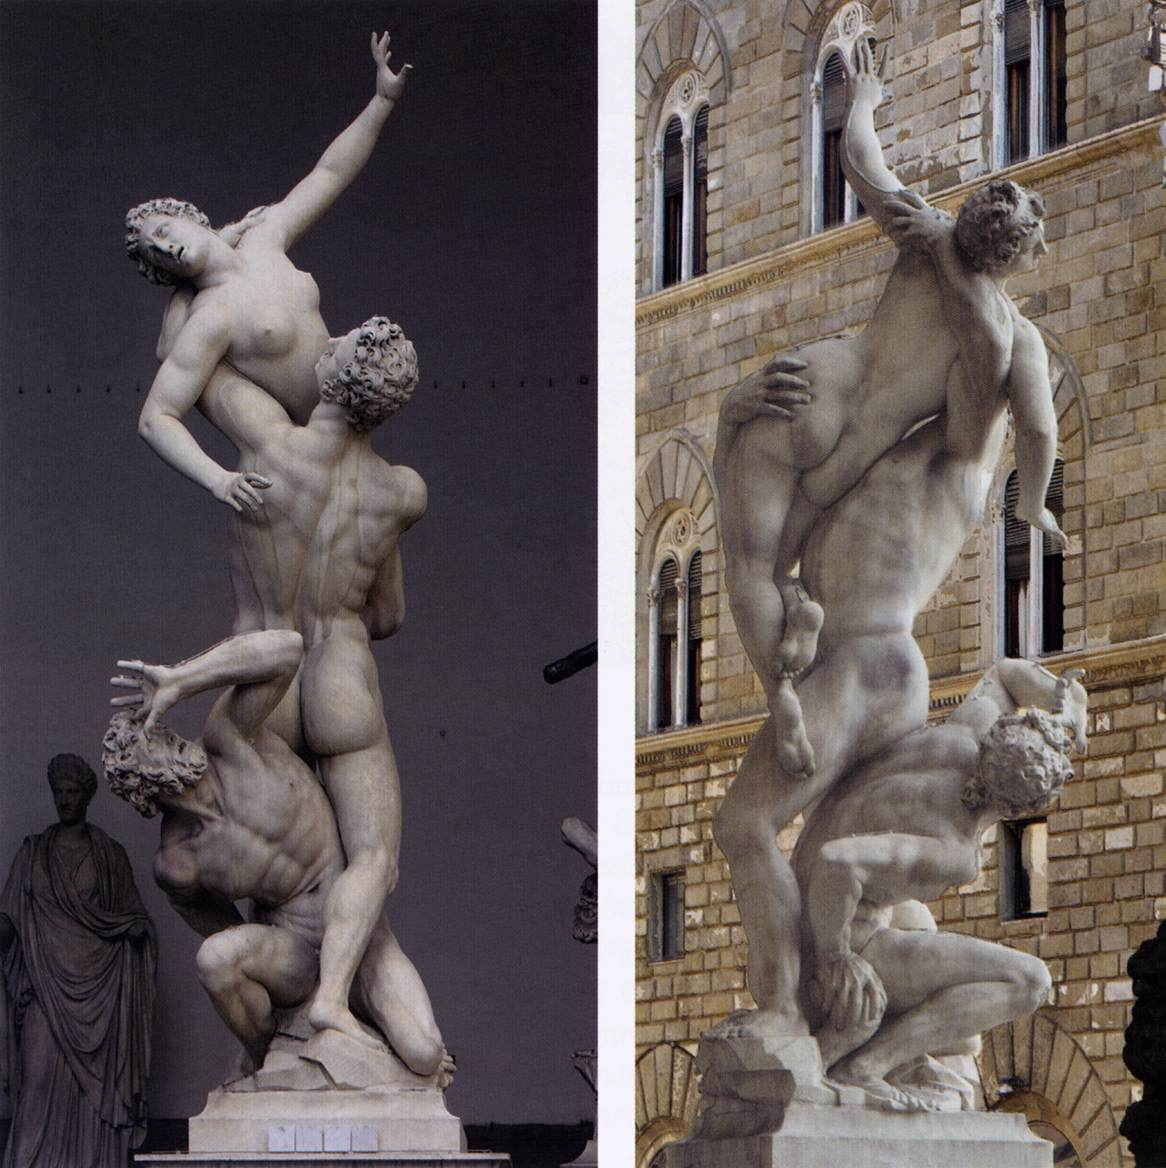 Abduction of the Sabine Women. Bologna. 1579.